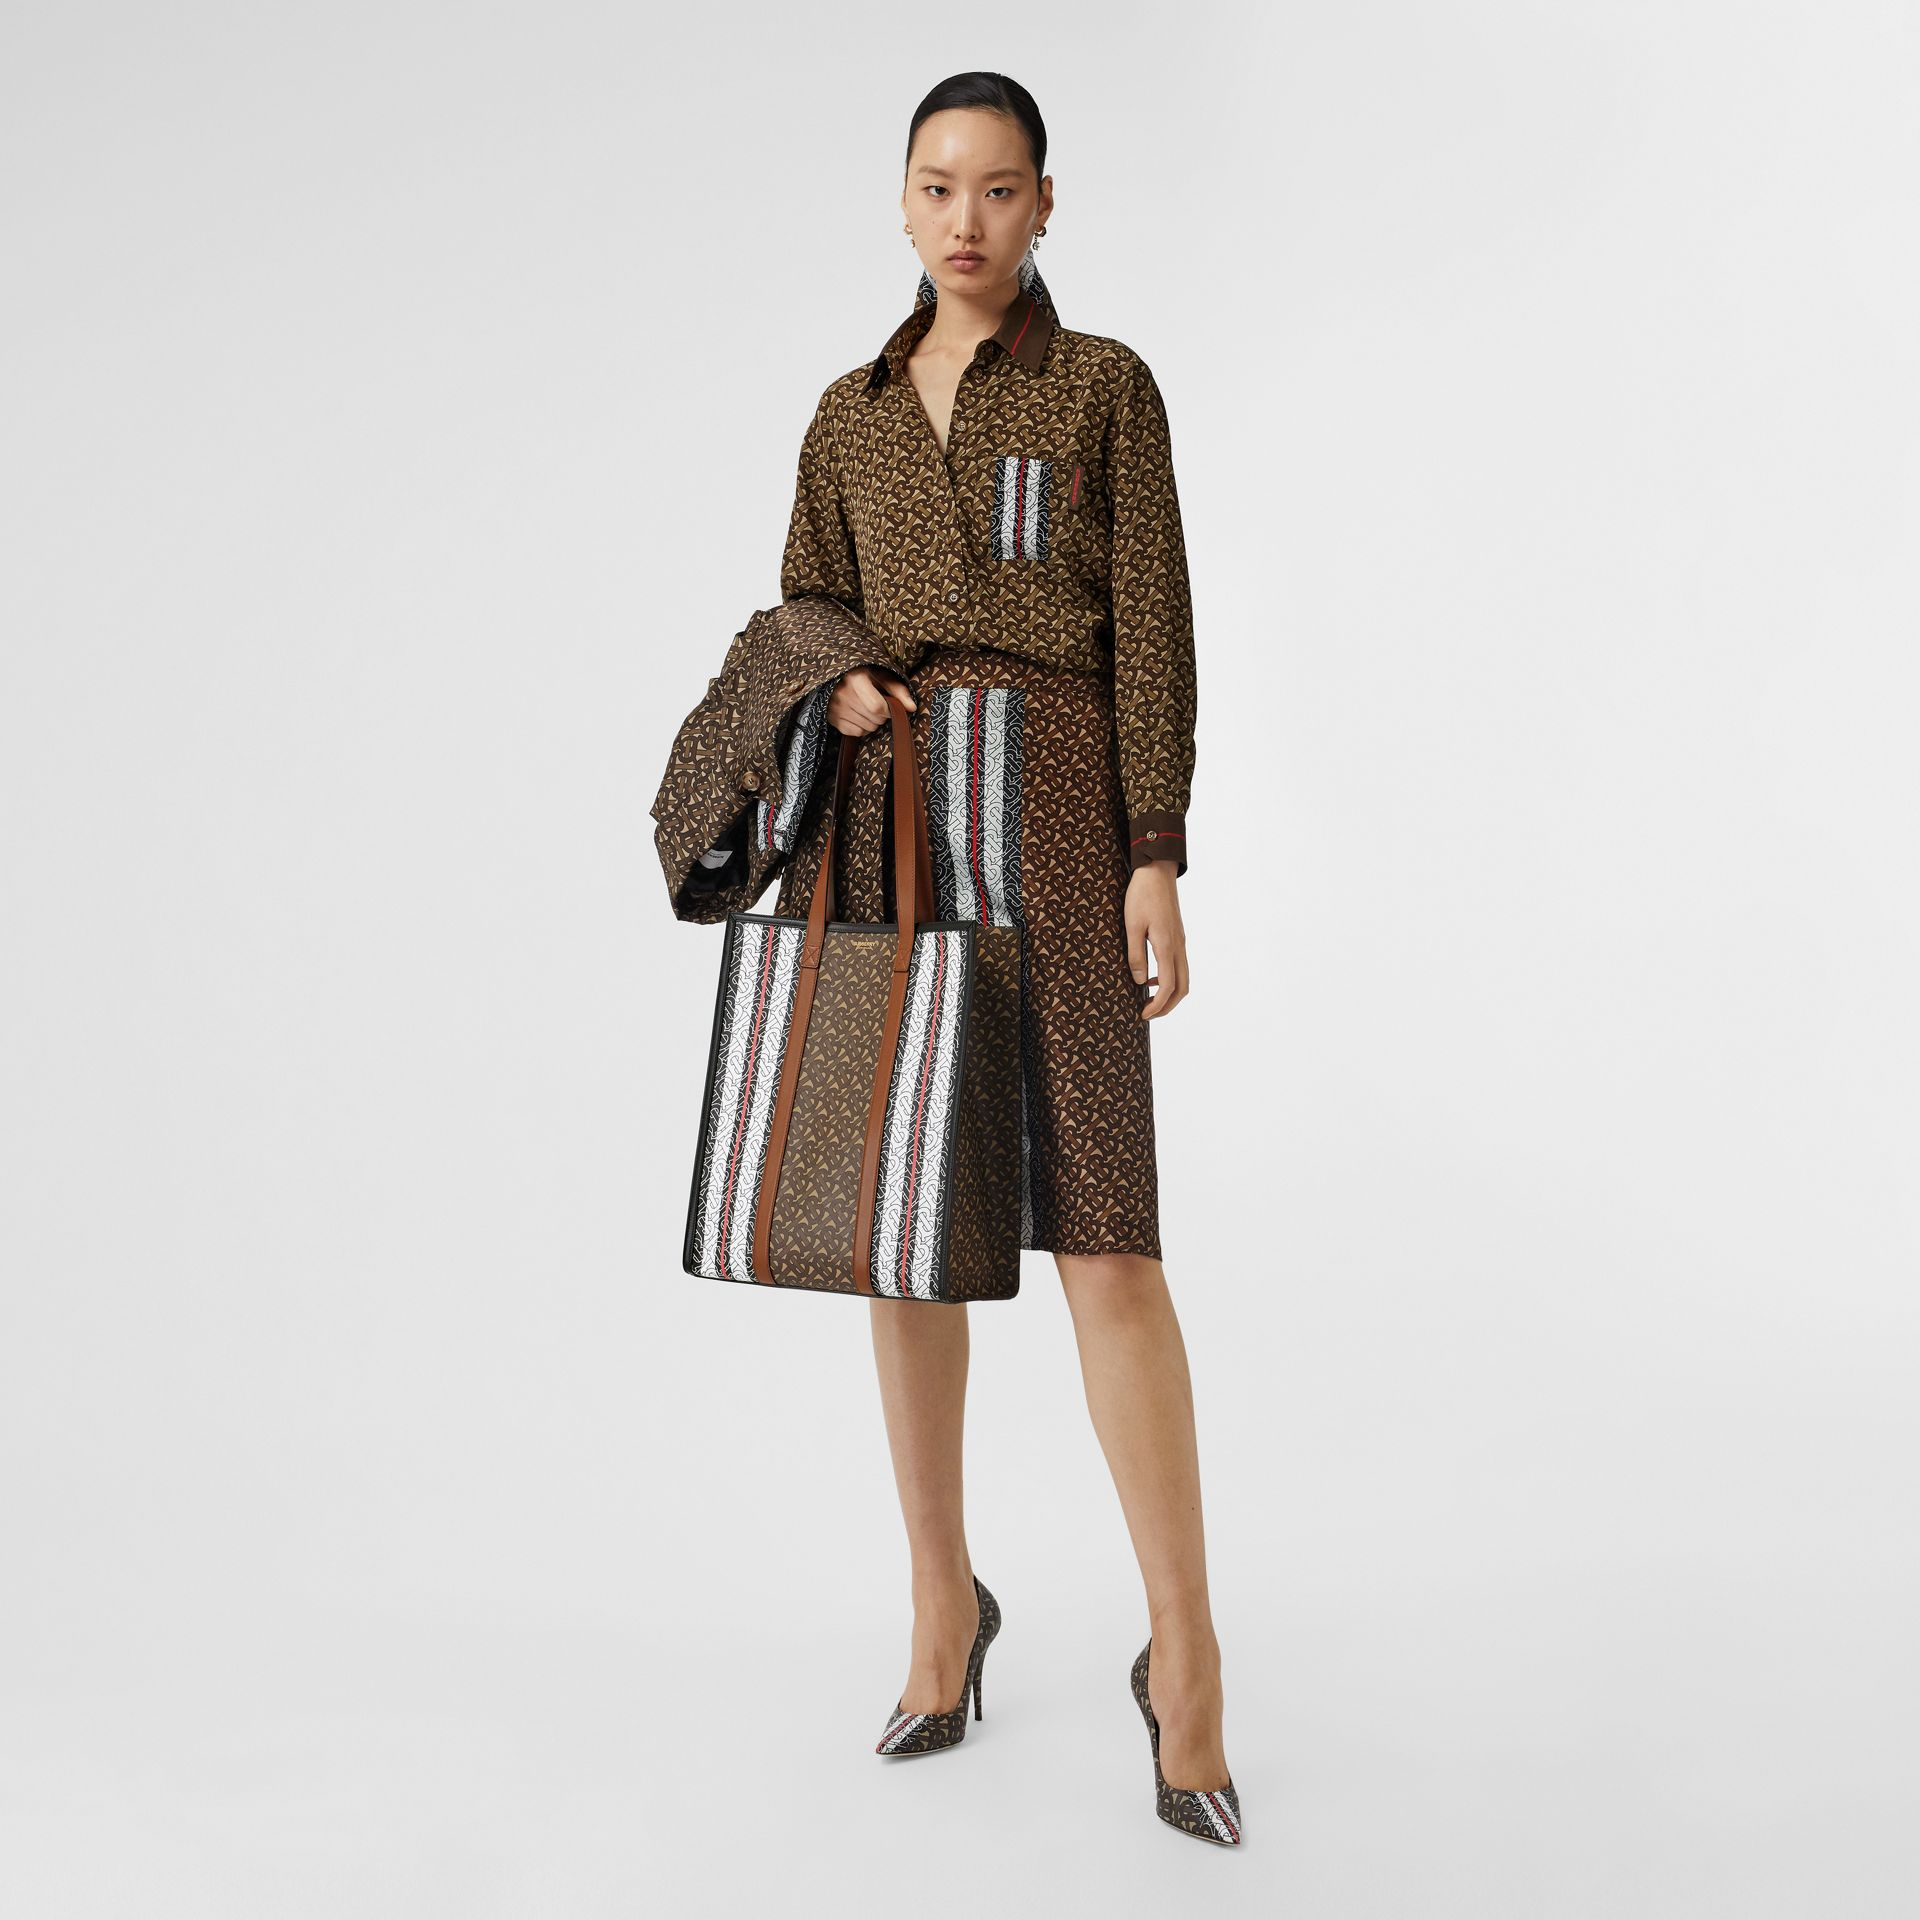 Monogram Stripe Print Silk Oversized Shirt in Bridle Brown - Women | Burberry - gallery image 4